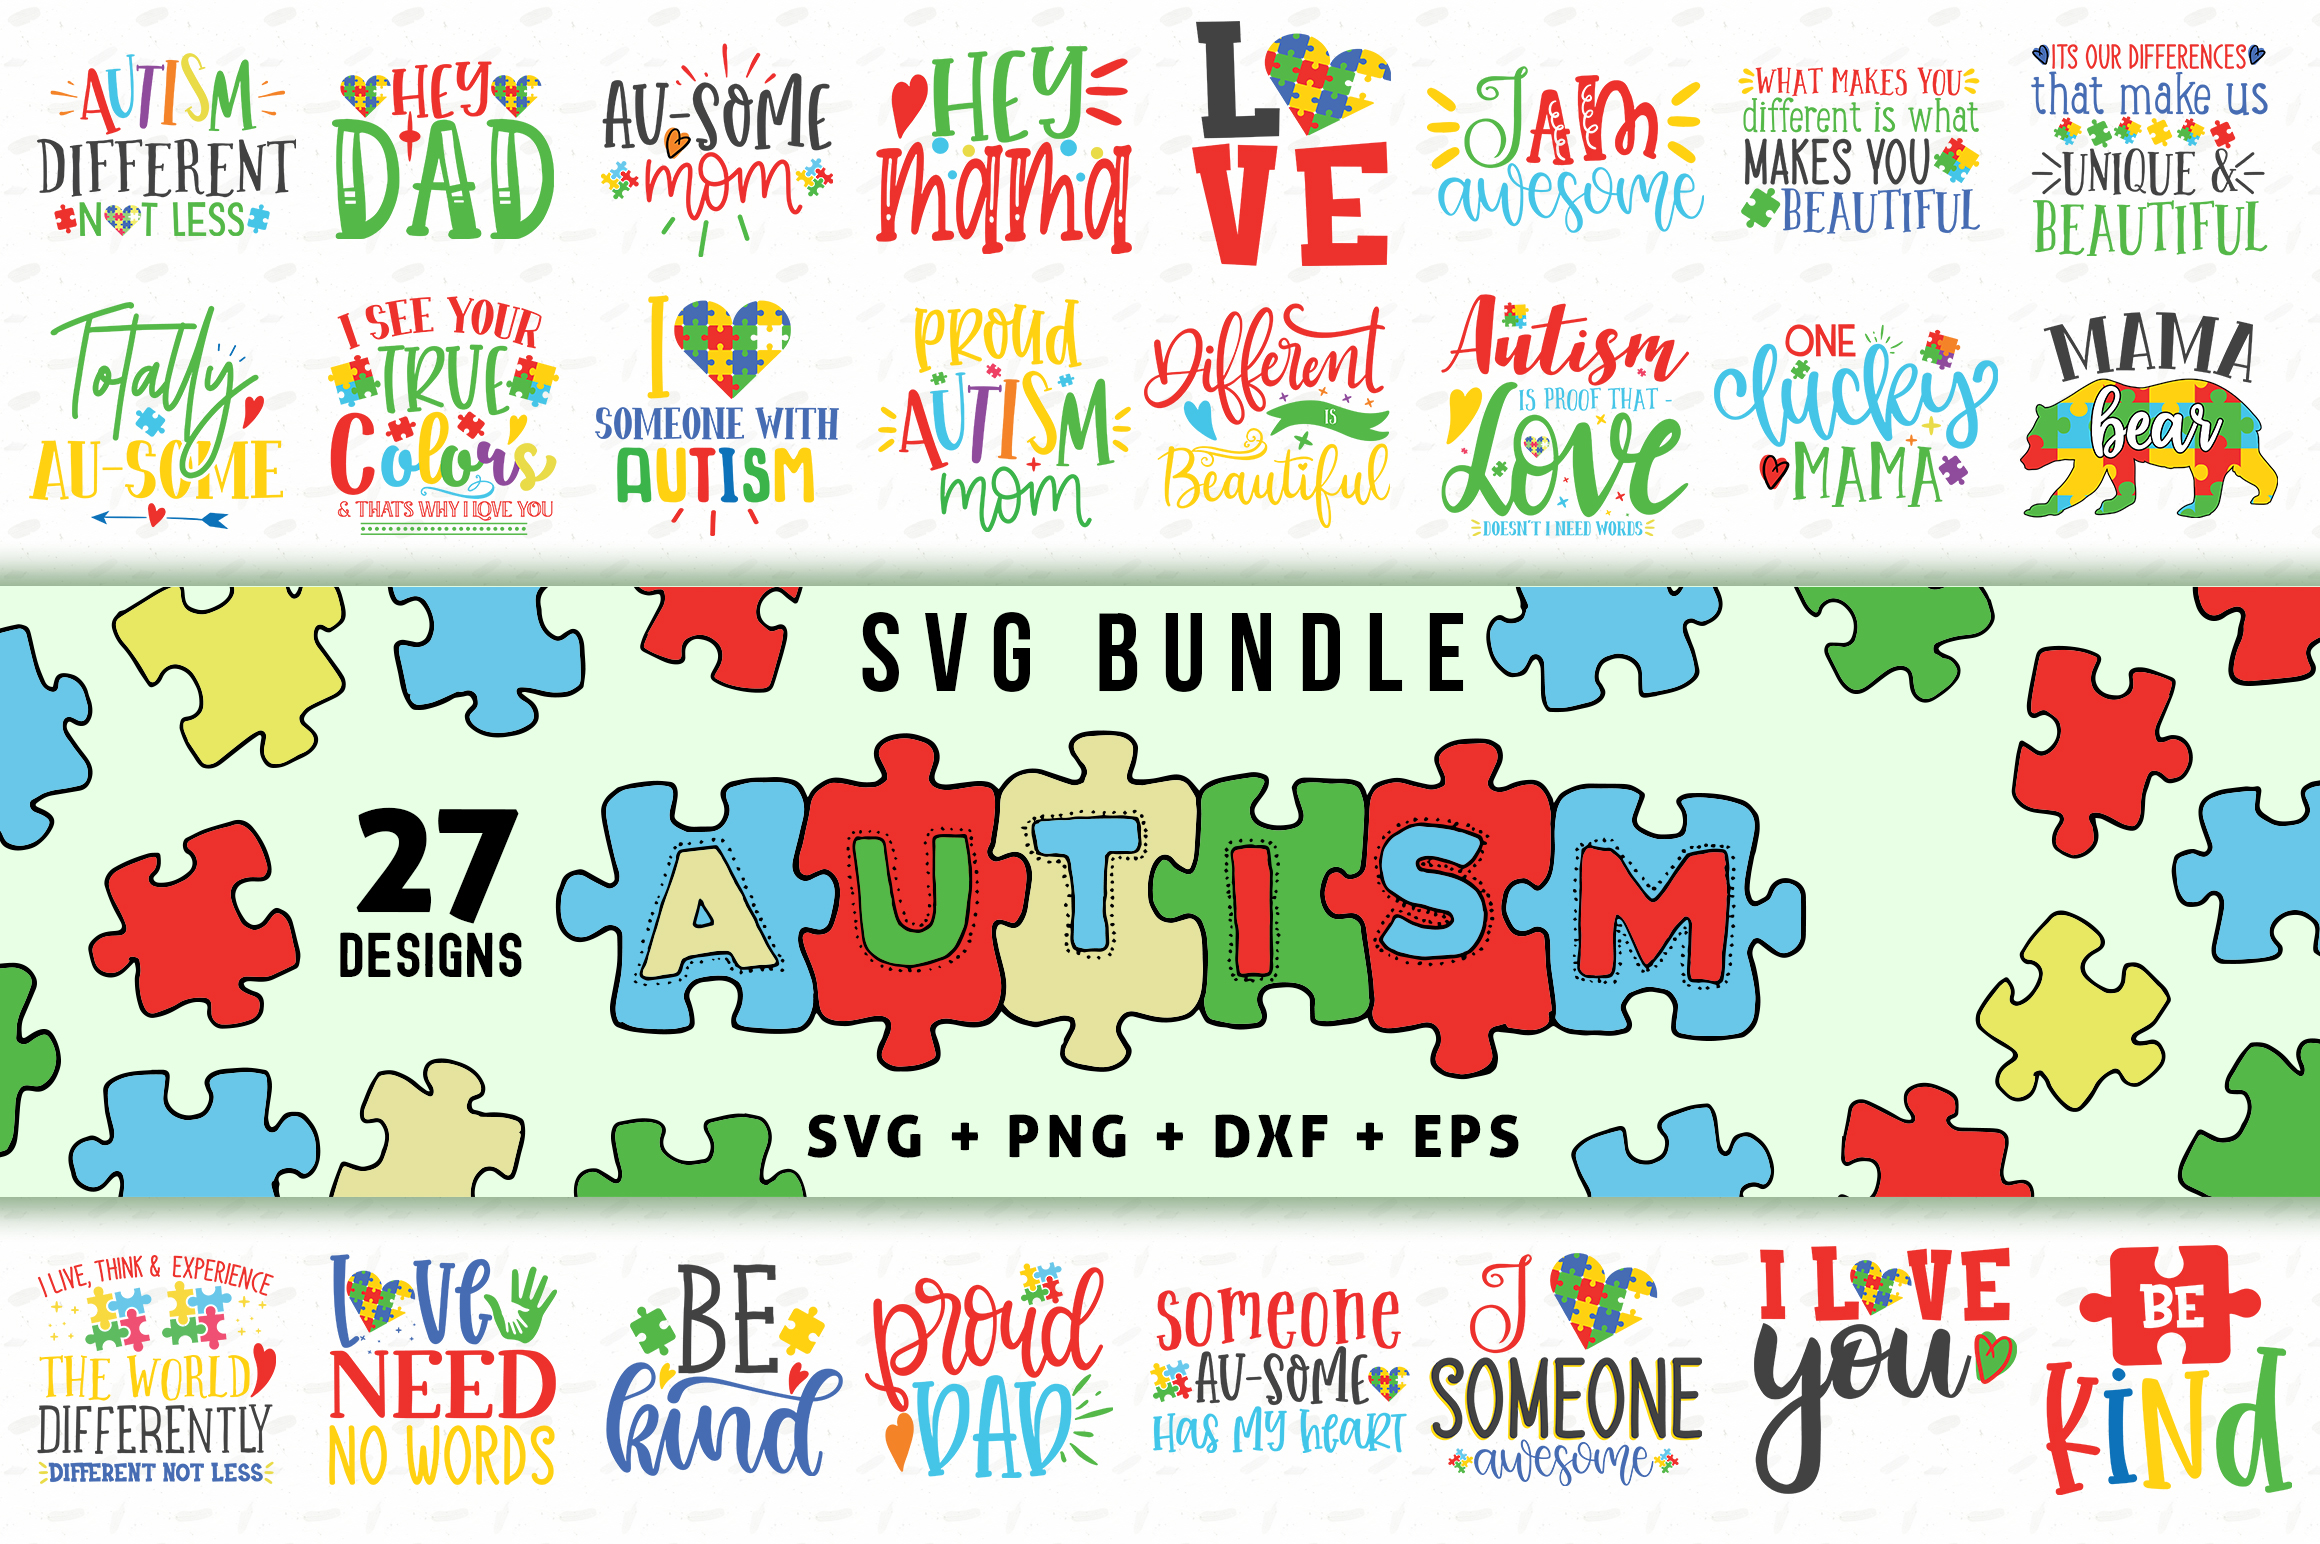 510 SVG DESIGN THE MIGHTY BUNDLE |32 DIFFERENT BUNDLES example image 11